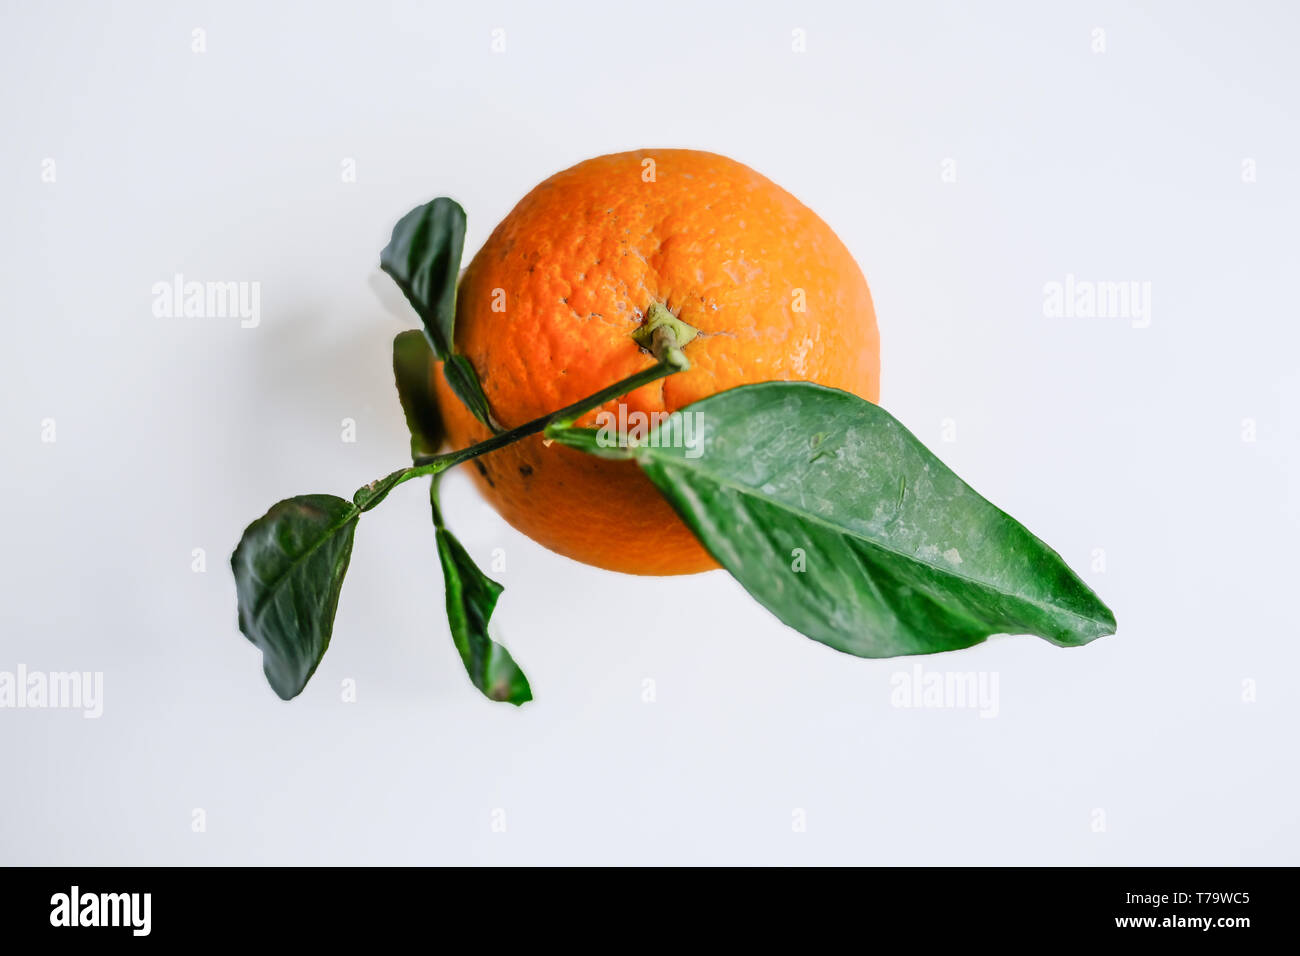 Natural single orange with green leaves on a plain light grey background. - Stock Image